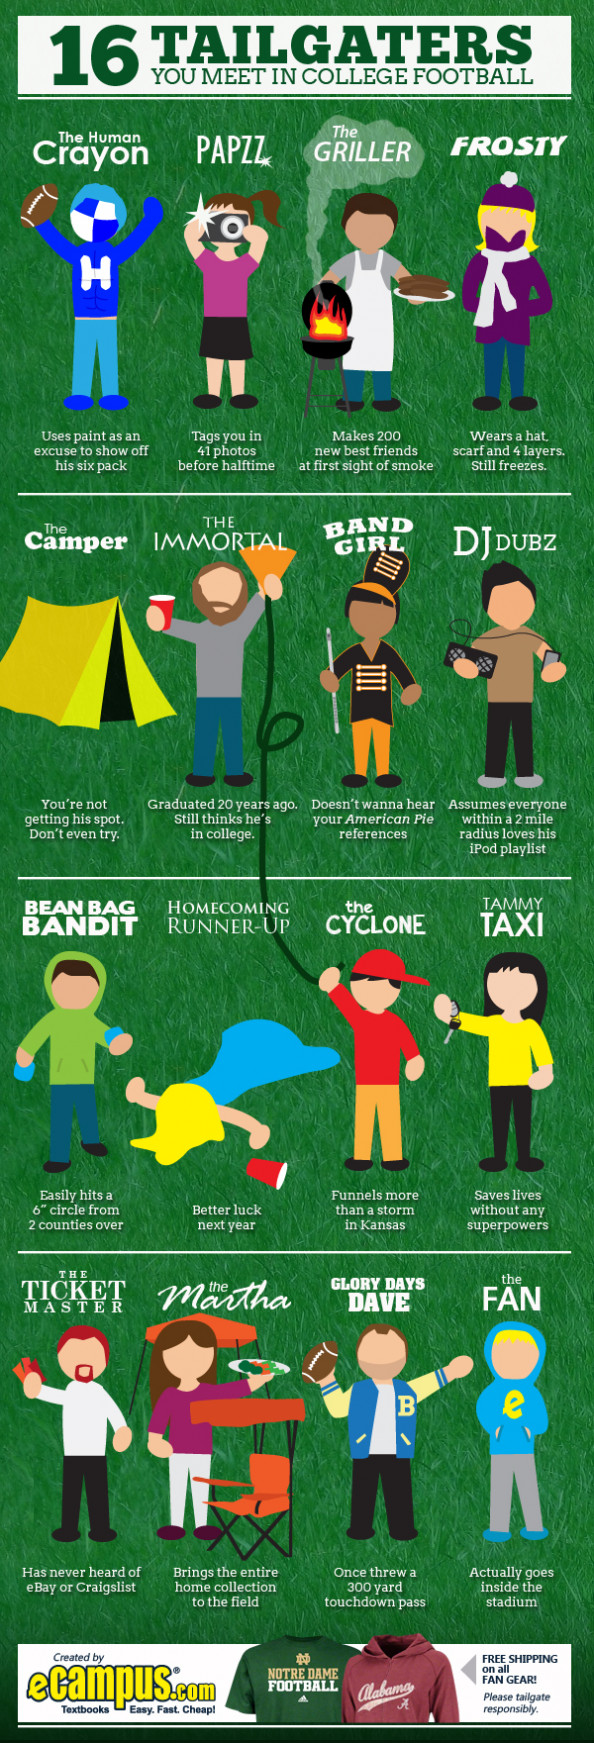 16 Tailgaters You Meet in College Football Infographic